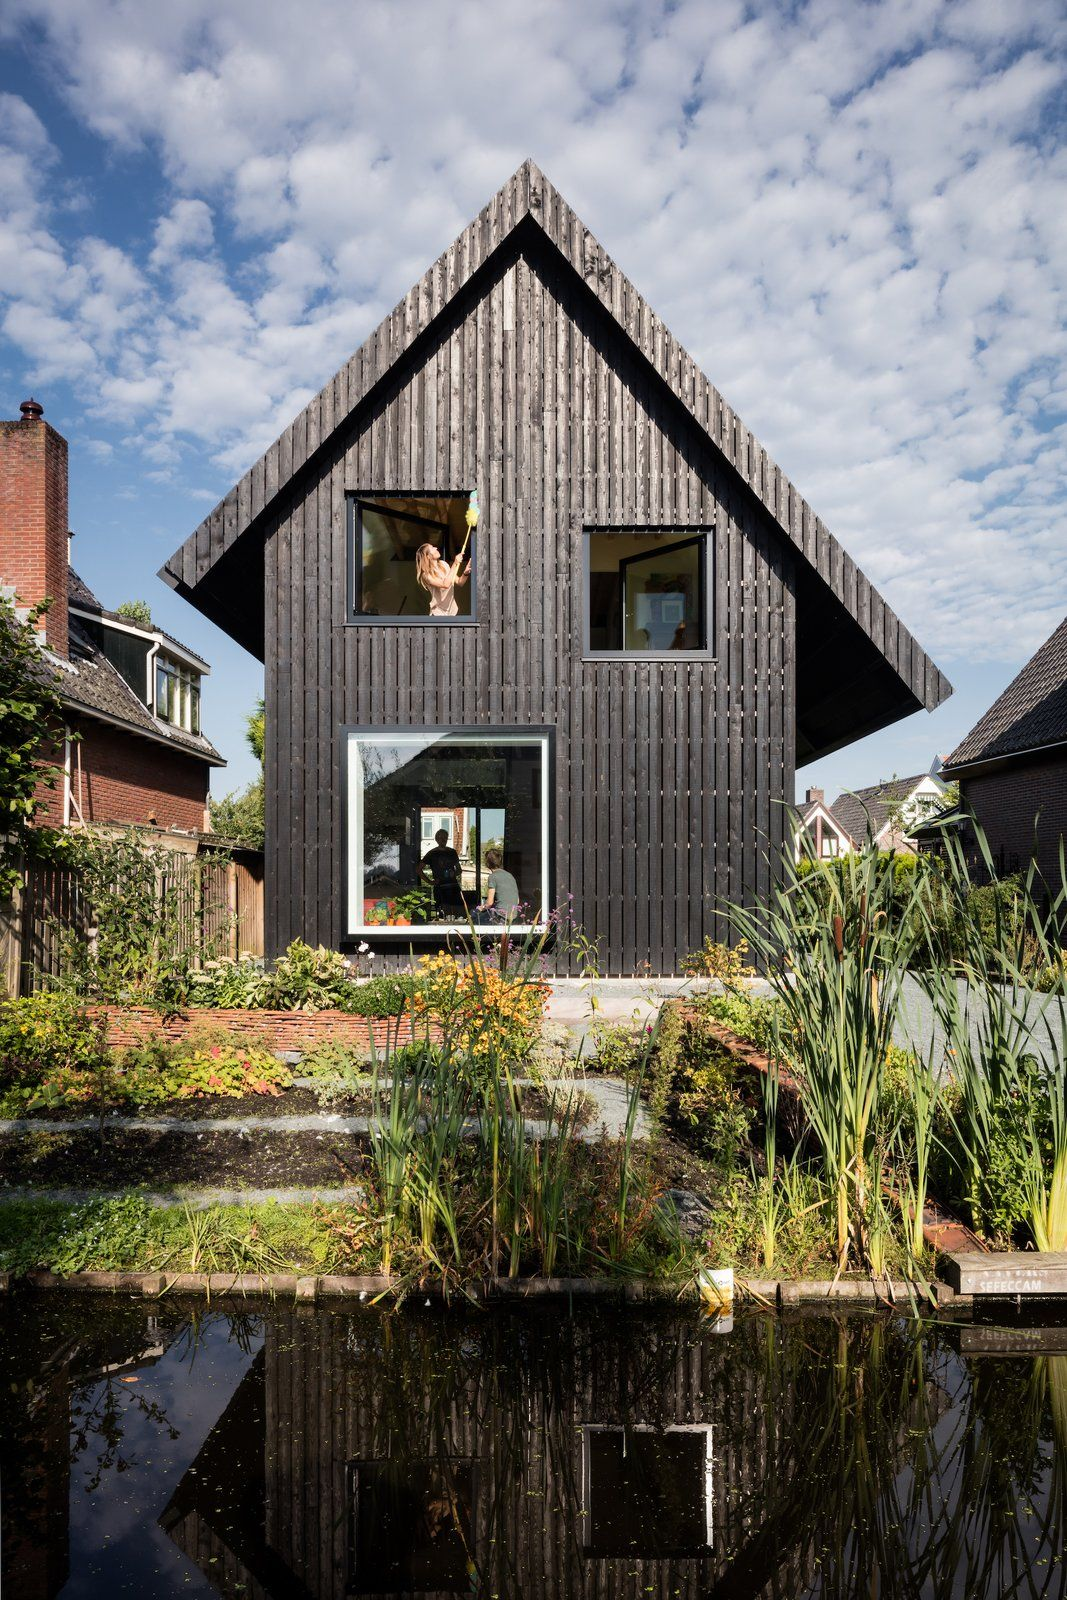 House Mm By Chris Collaris Architects Amsterdam Houses Timber House Wooden Cottage